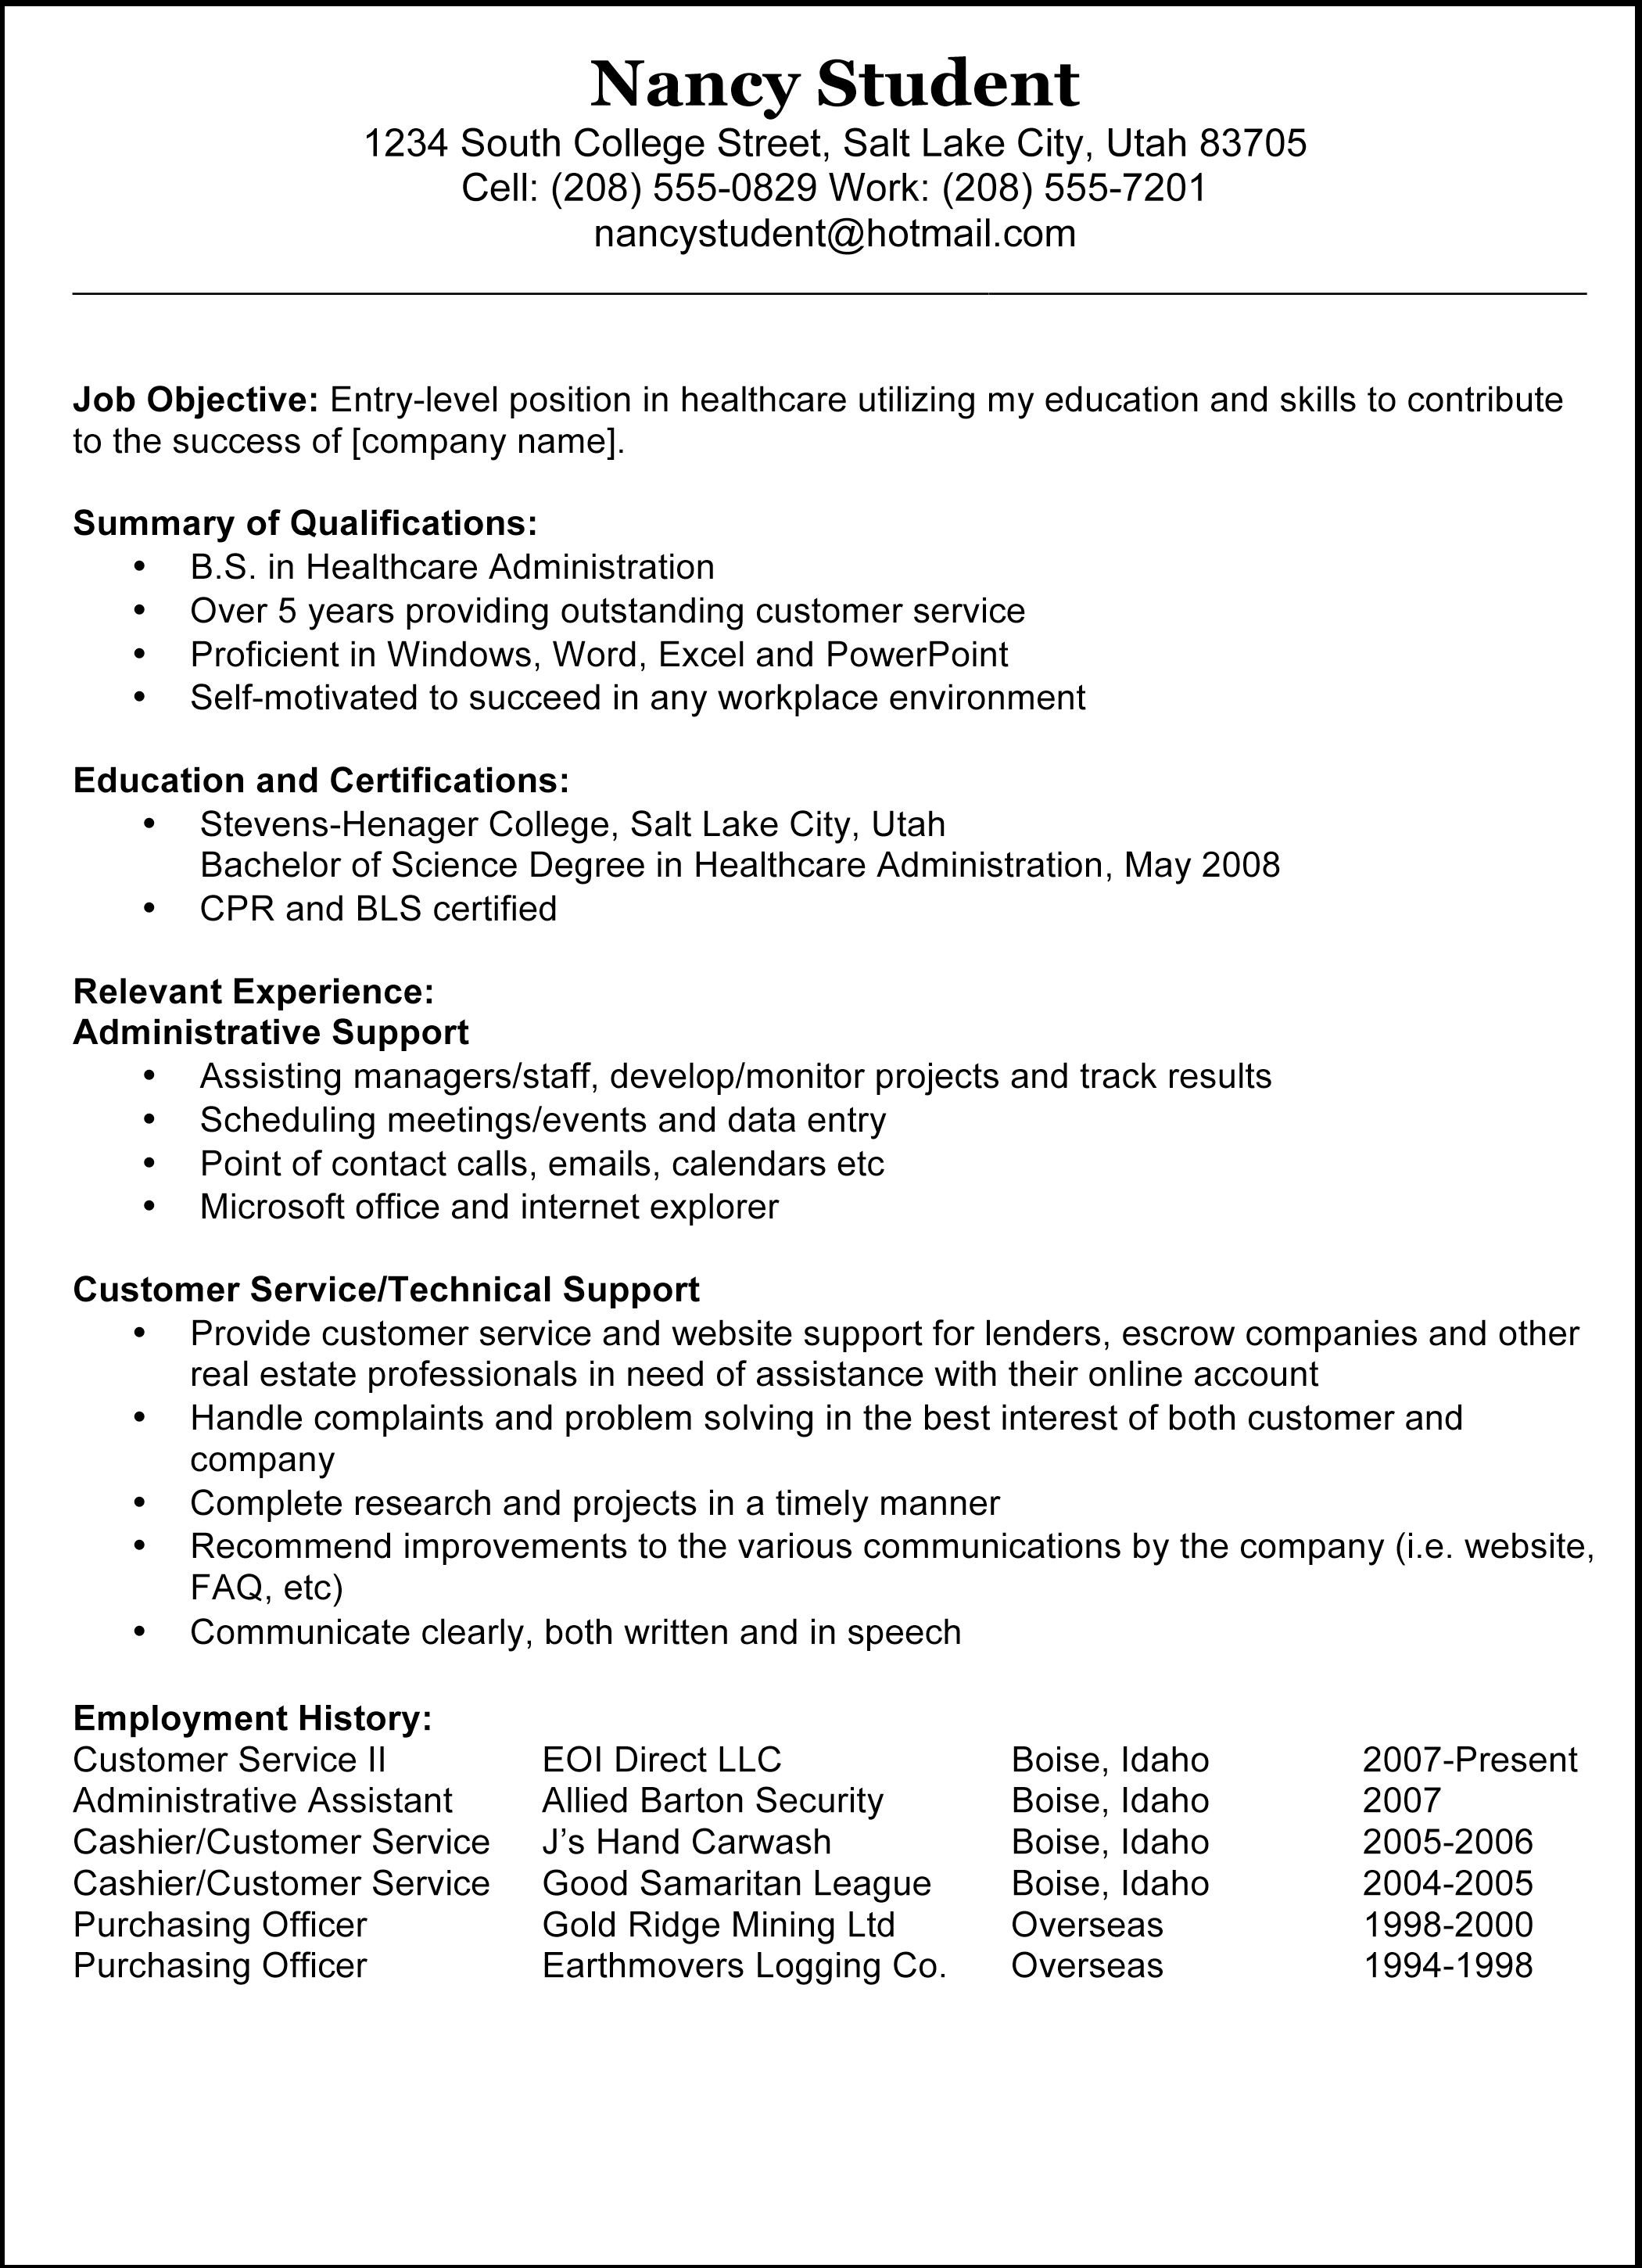 Resume Examples For StudentsSample Resumes Cover Letter